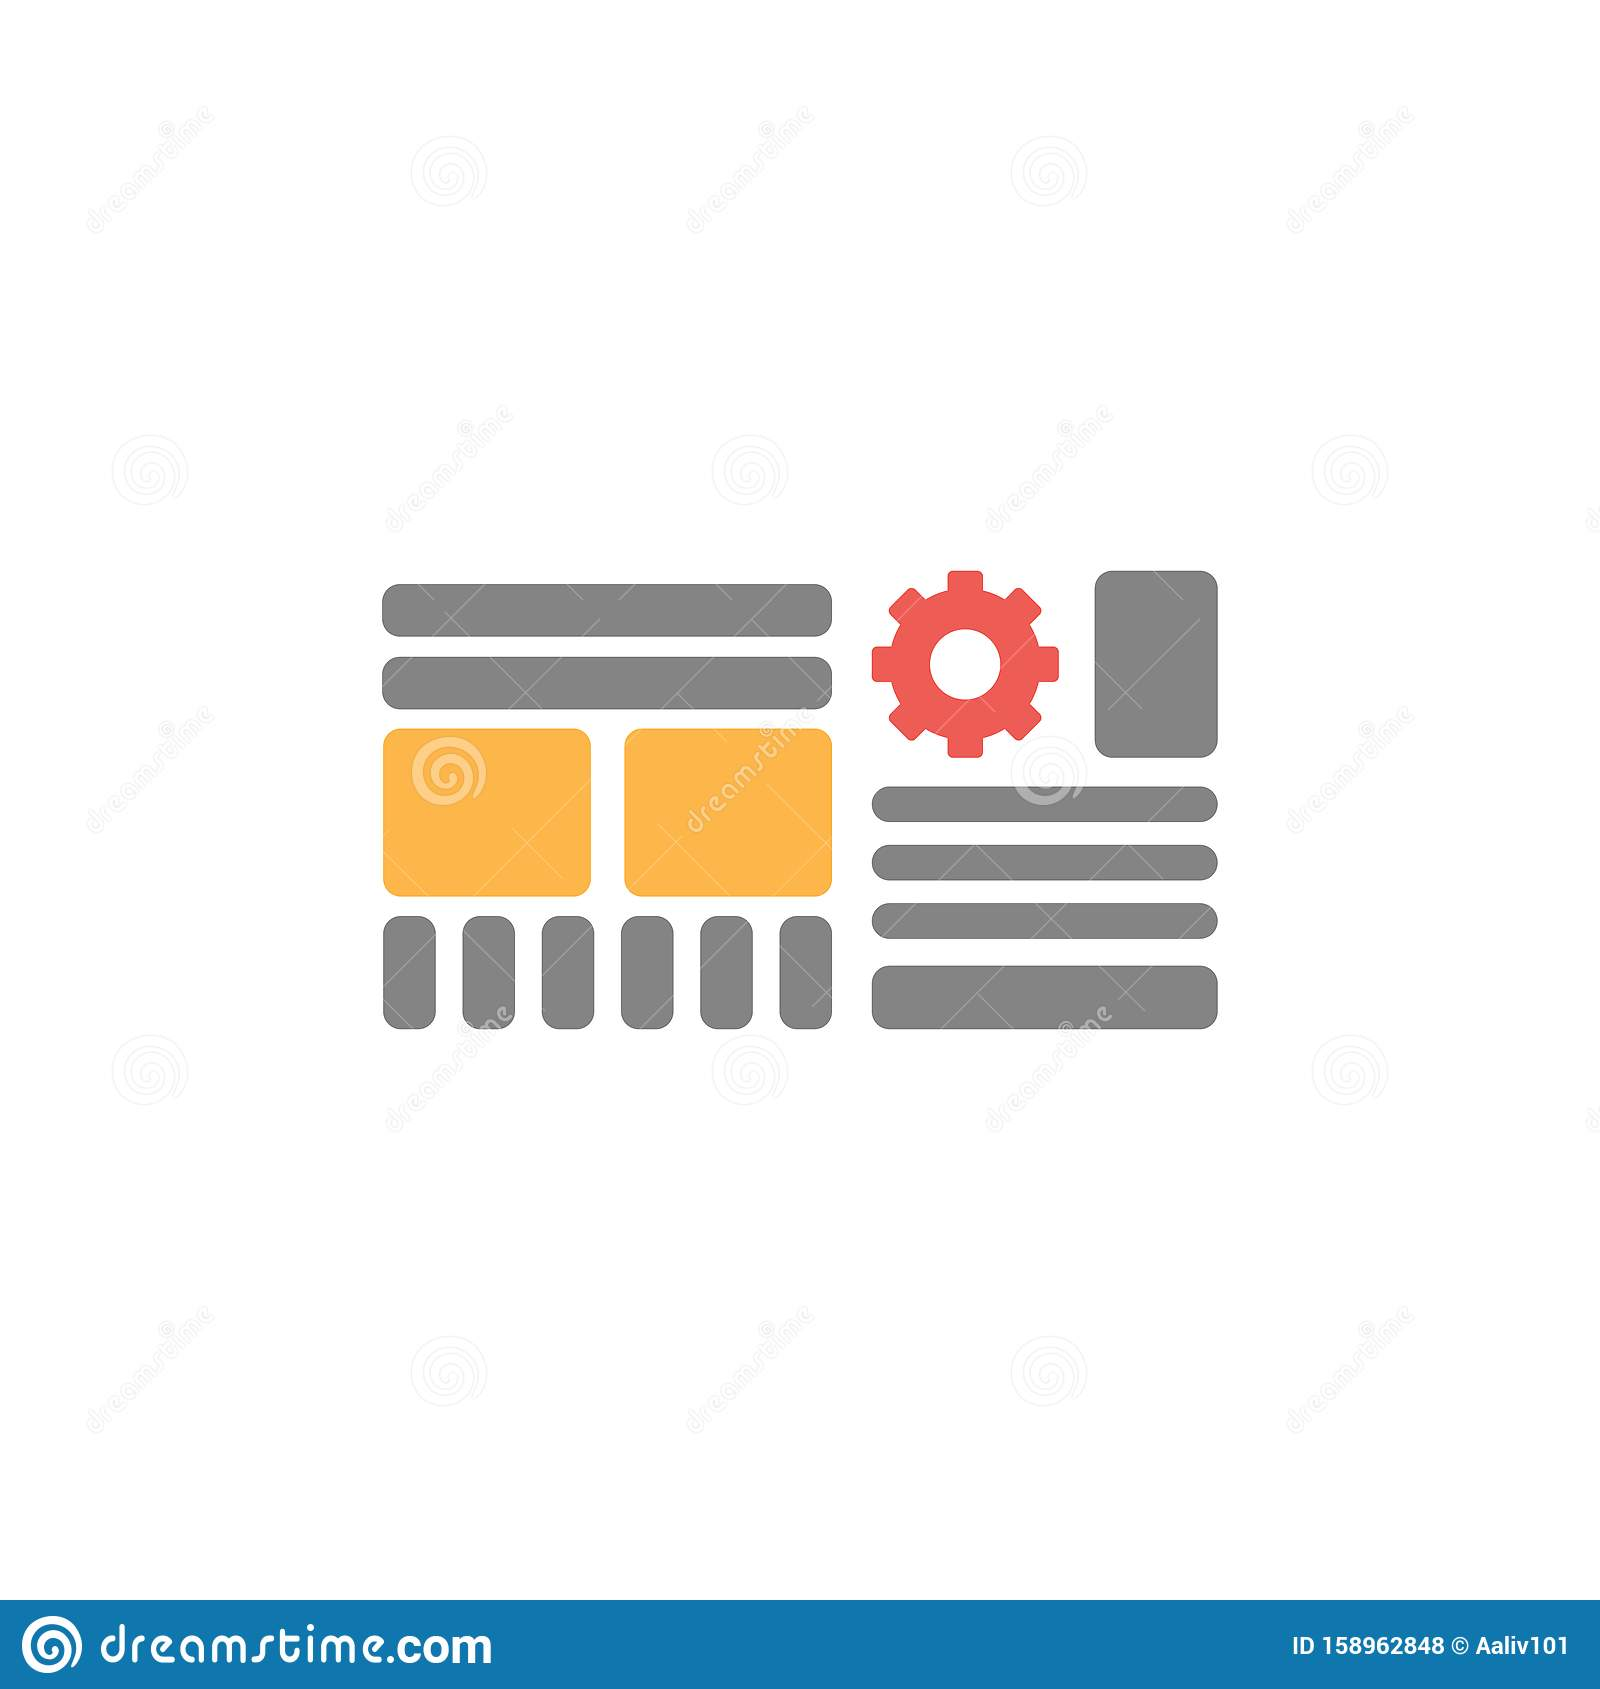 Web grid icon. Wireframe sign